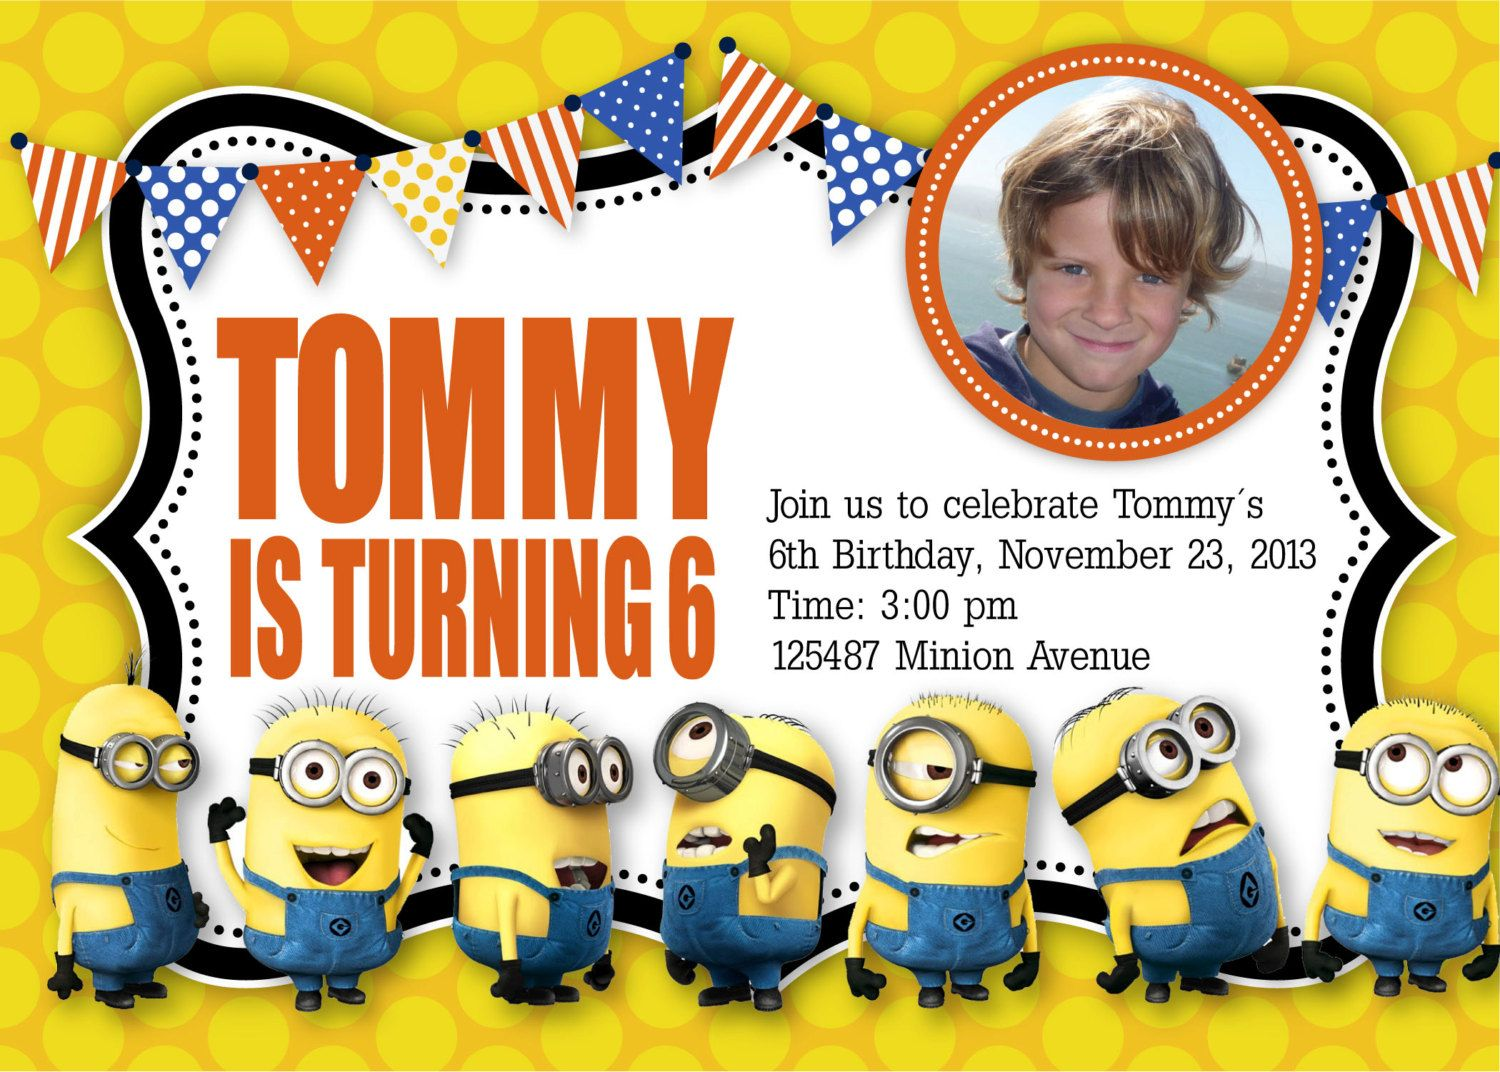 Minion Birthday Invitation Templates Free Invitations - Minions birthday invitation template